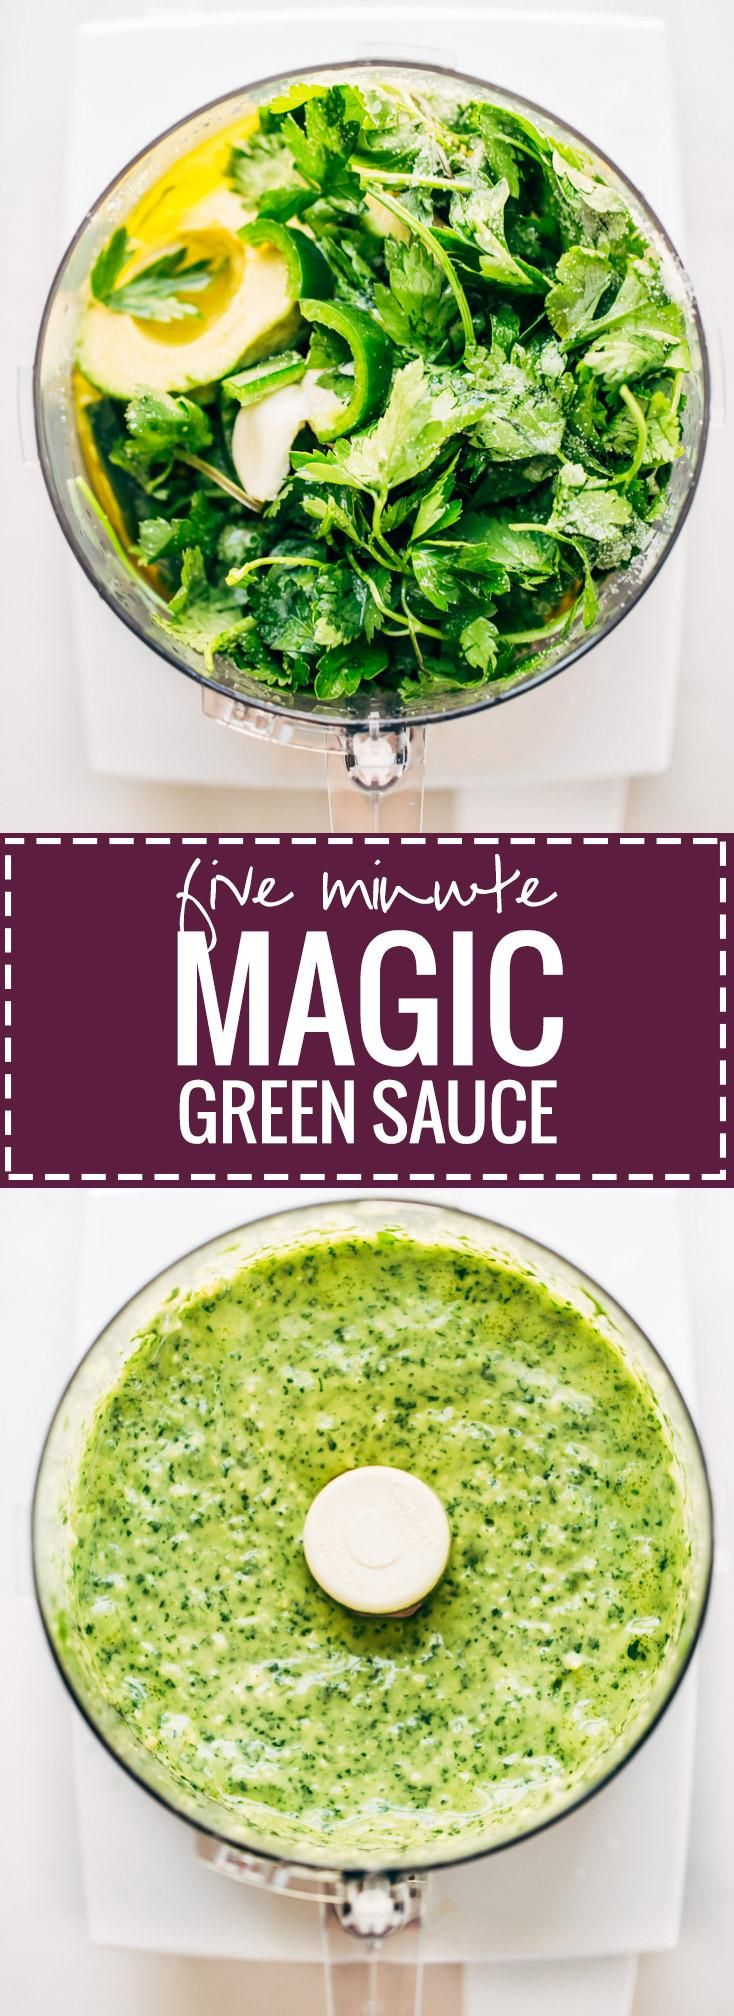 This 5 Minute Magic Green Sauce can be used on salads, with chicken, or just as a dip! With ingredients including parsley, cilantro, avocado, garlic, and lime, it's also #vegan.